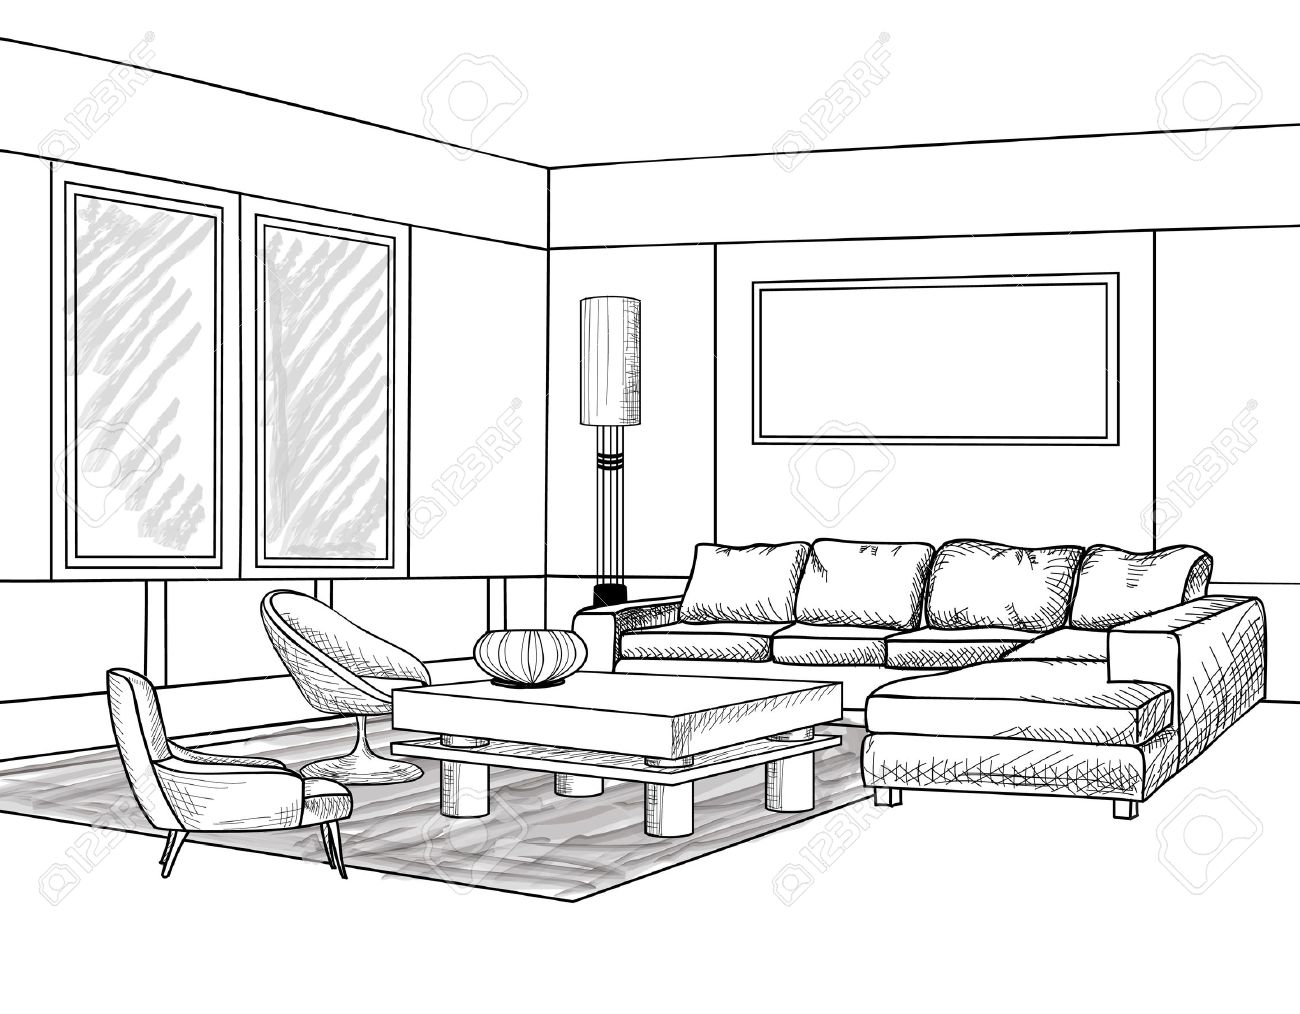 Interior outline sketch furniture blueprint royalty free cliparts furniture blueprint stock vector 34435652 malvernweather Image collections